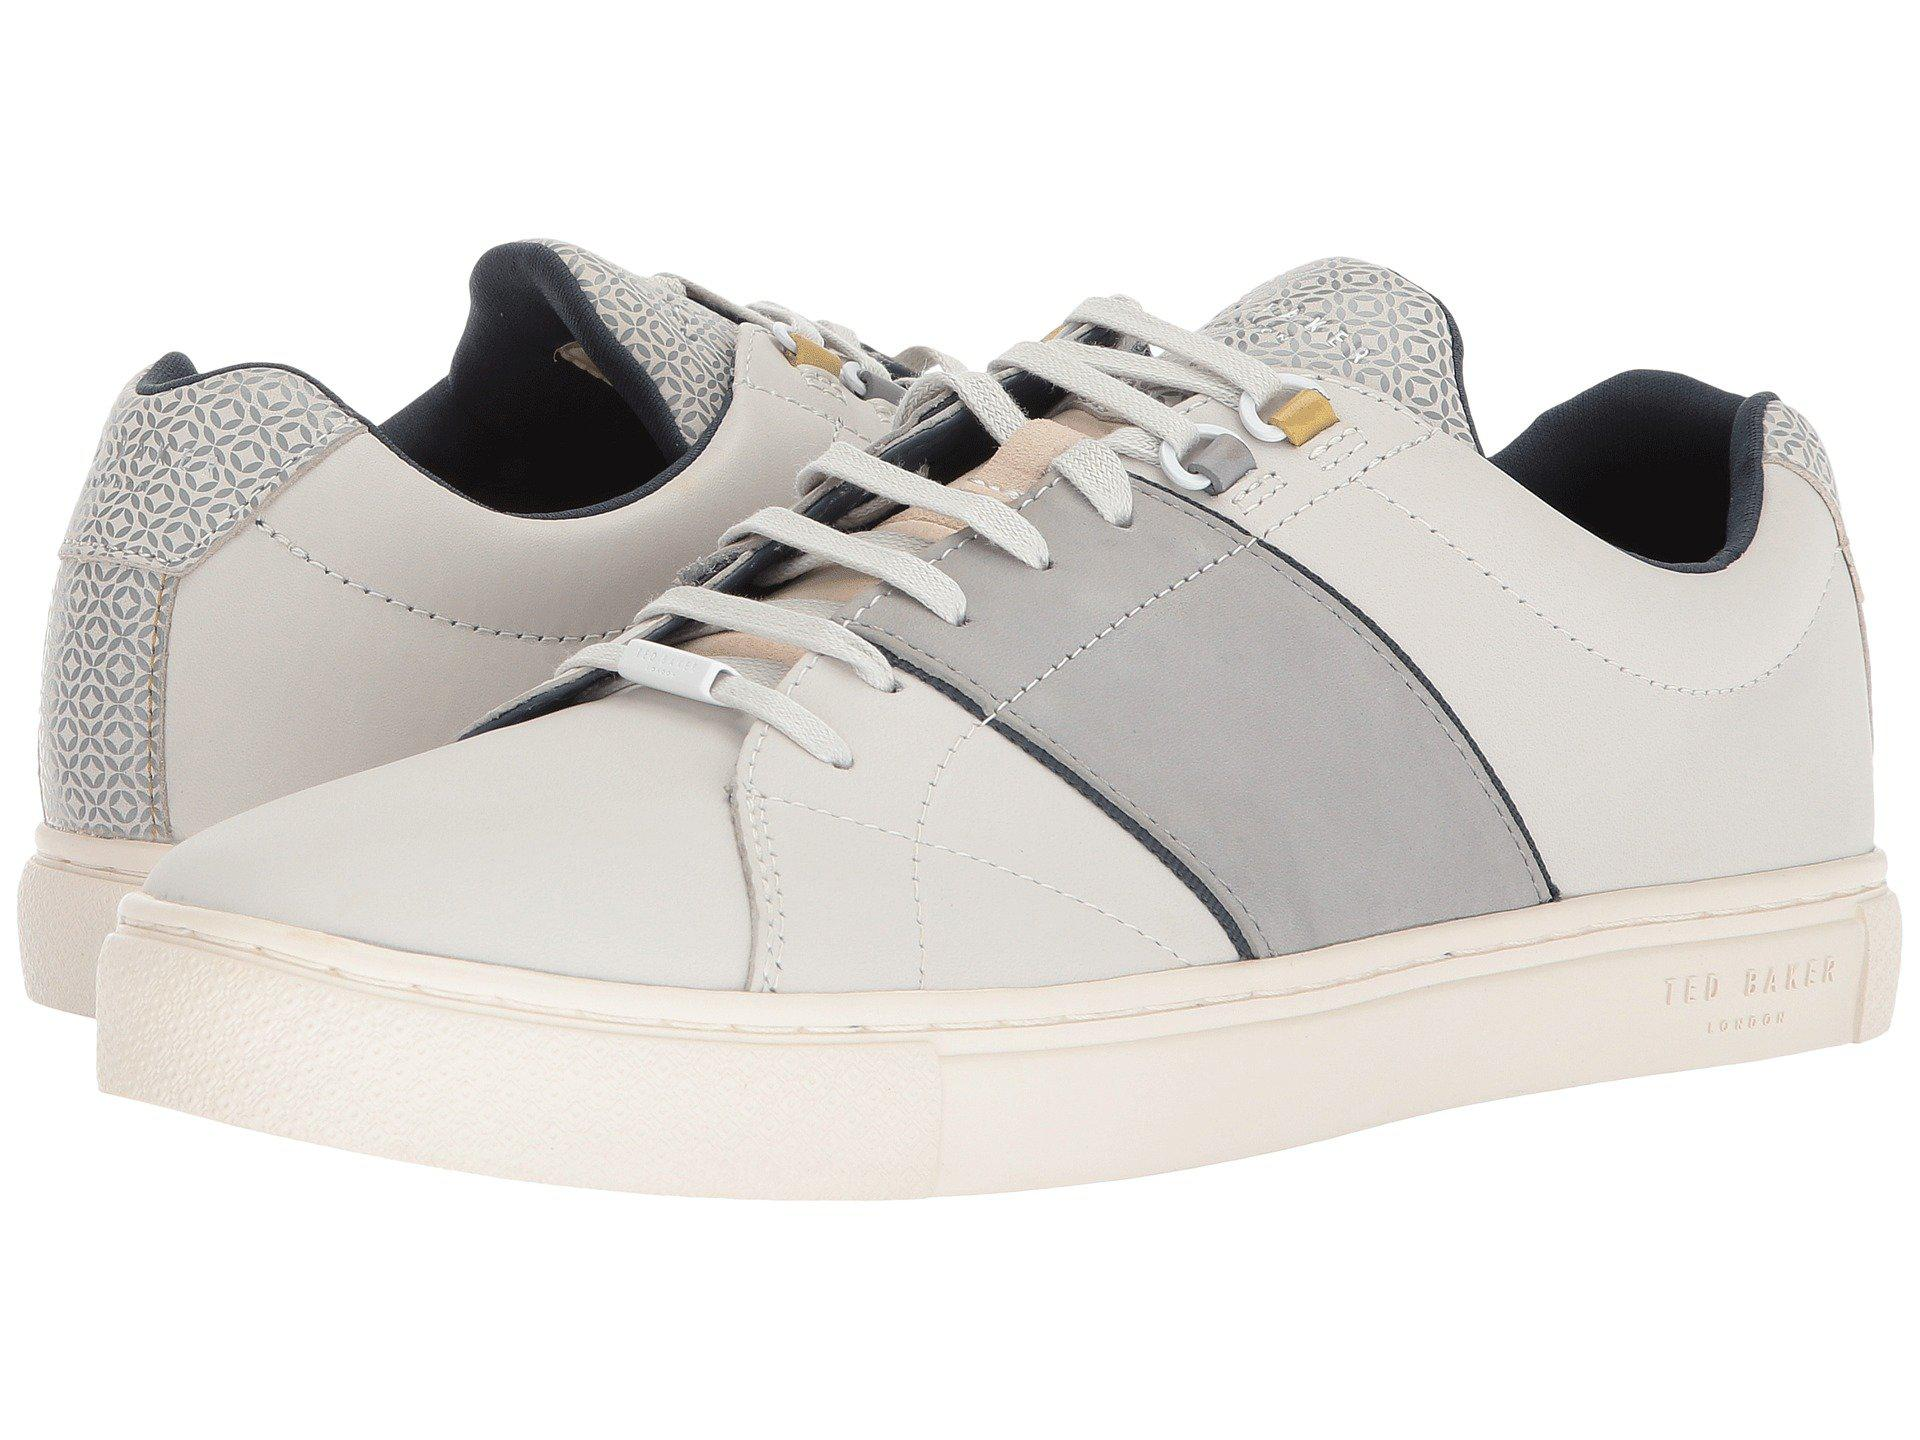 Ted Baker Leather Quana Sneaker in